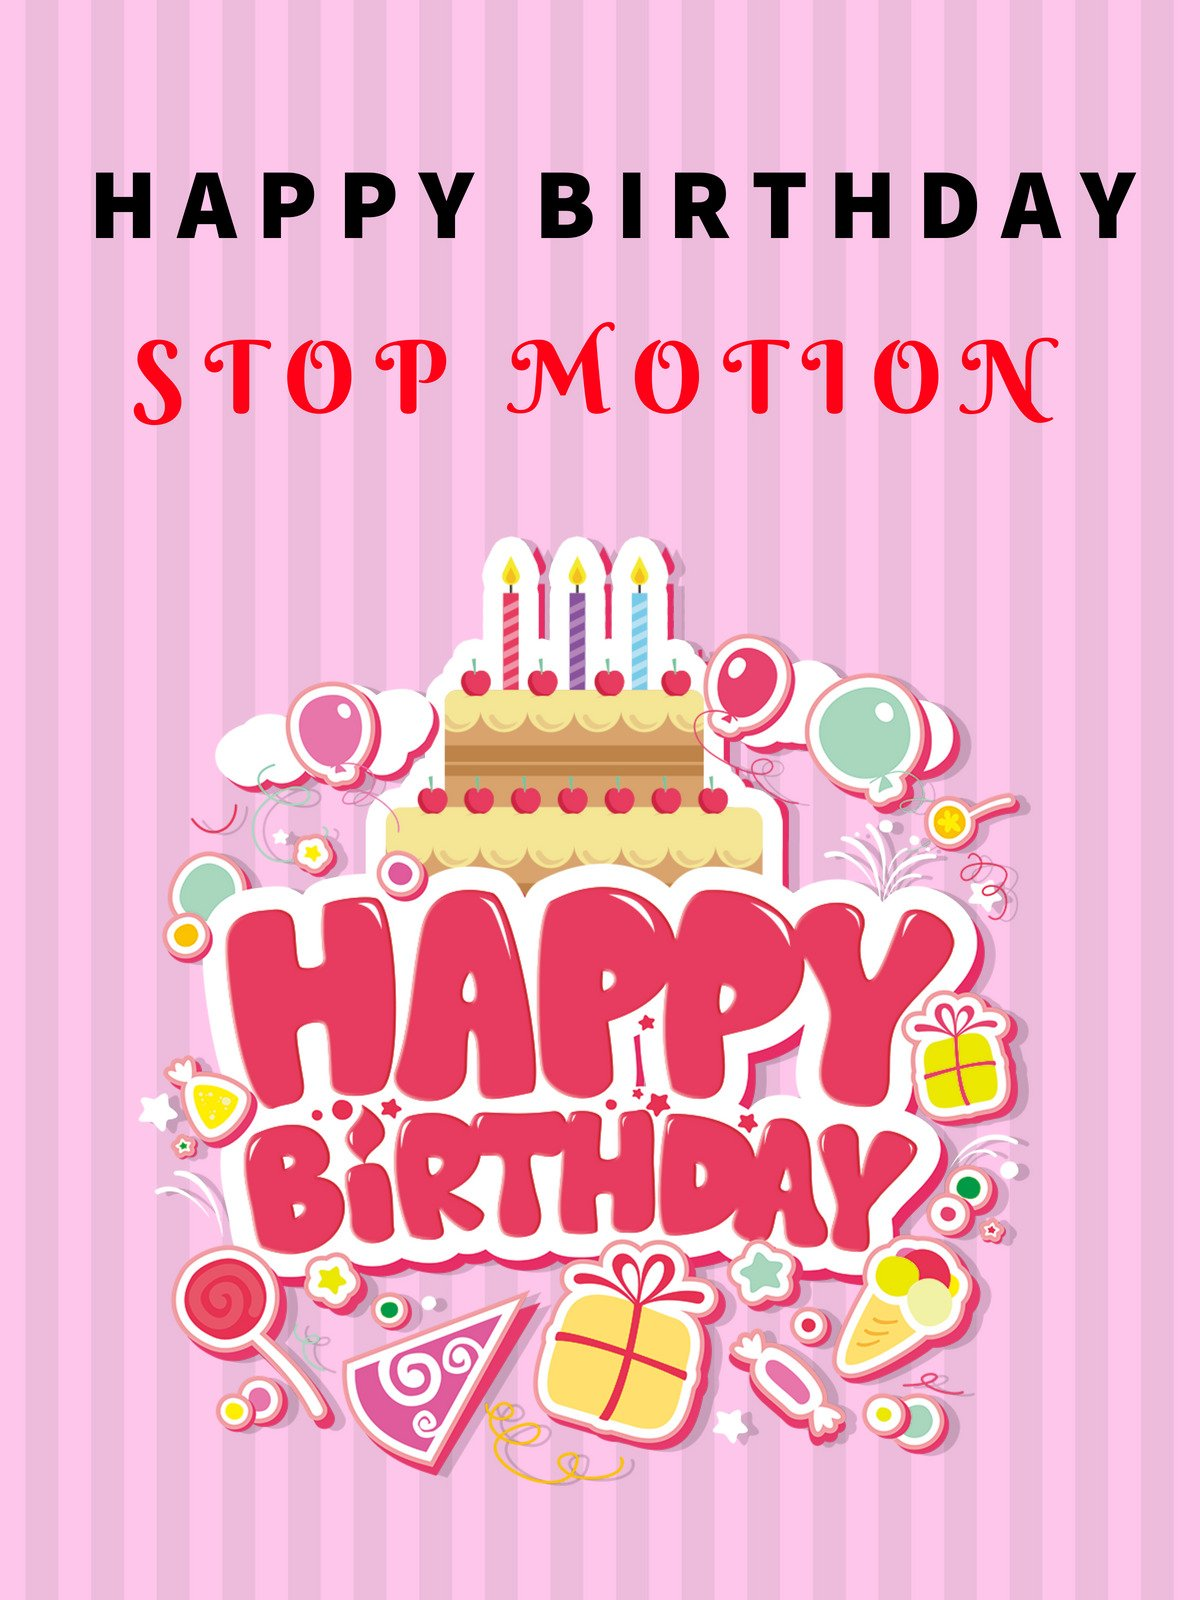 Clip: Happy Birthday Stop Motion